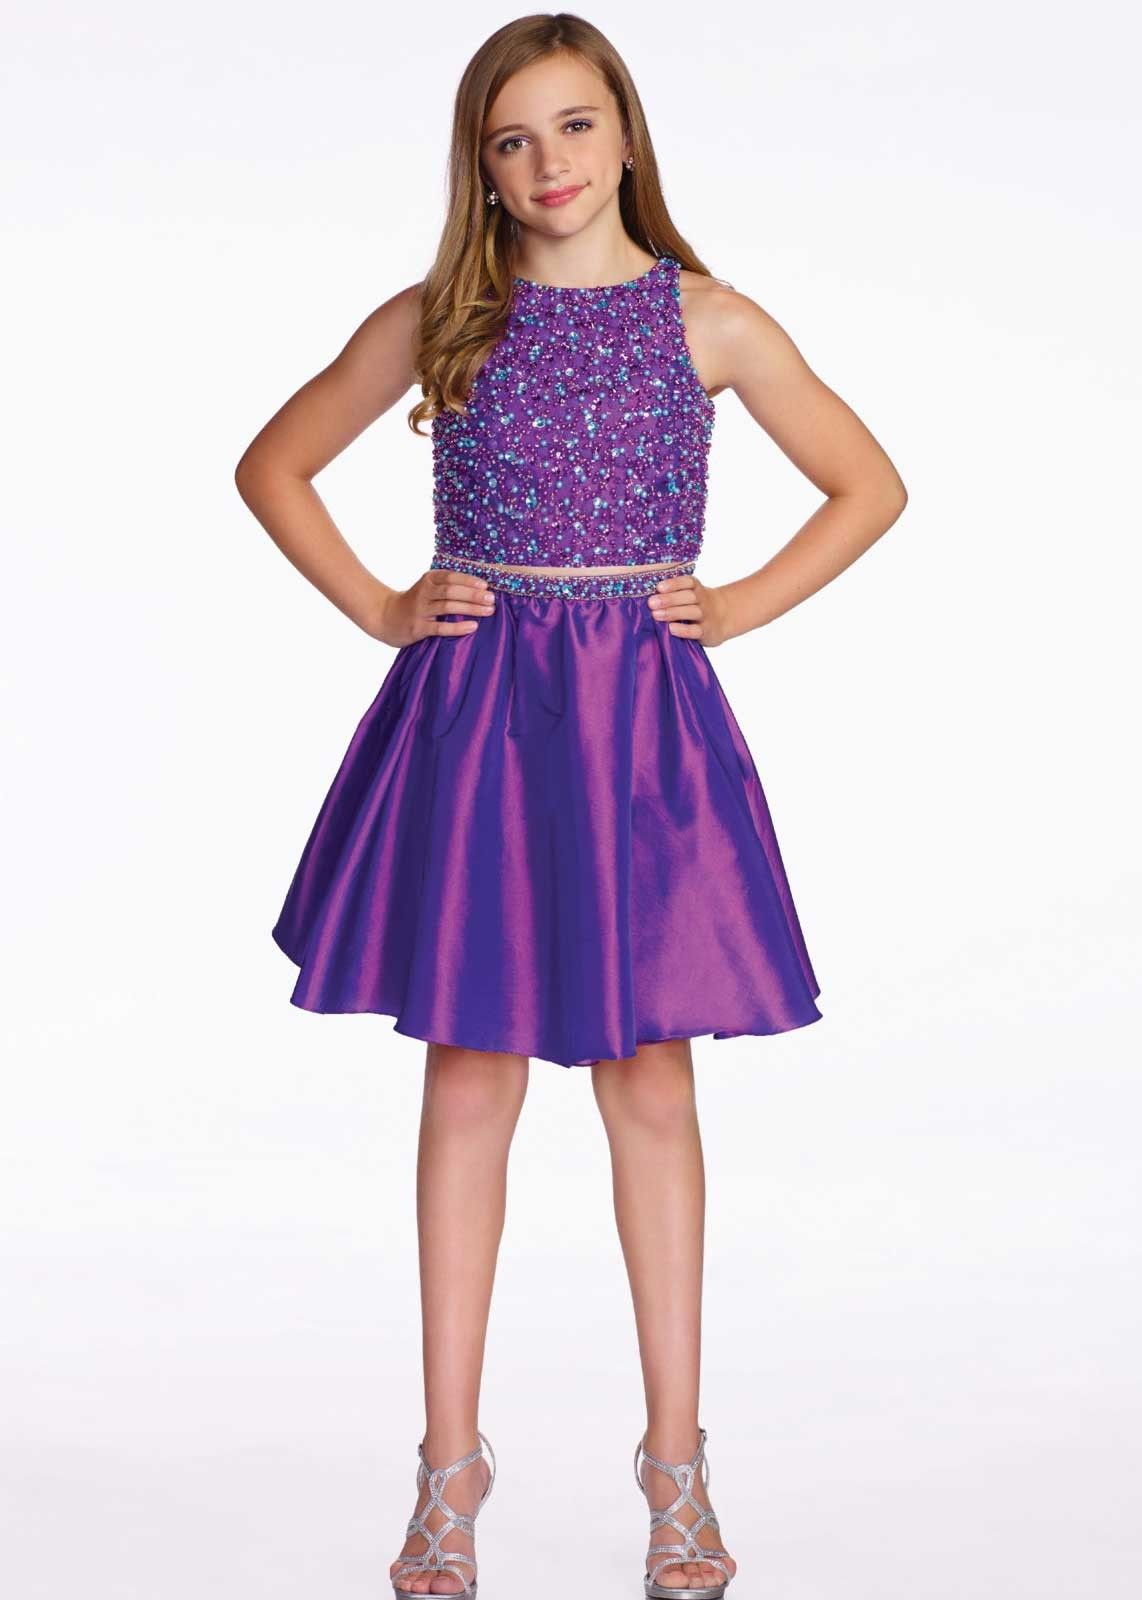 Lexie by Mon Cheri TW11653 Girls 2 Piece Taffeta Party Dress ...